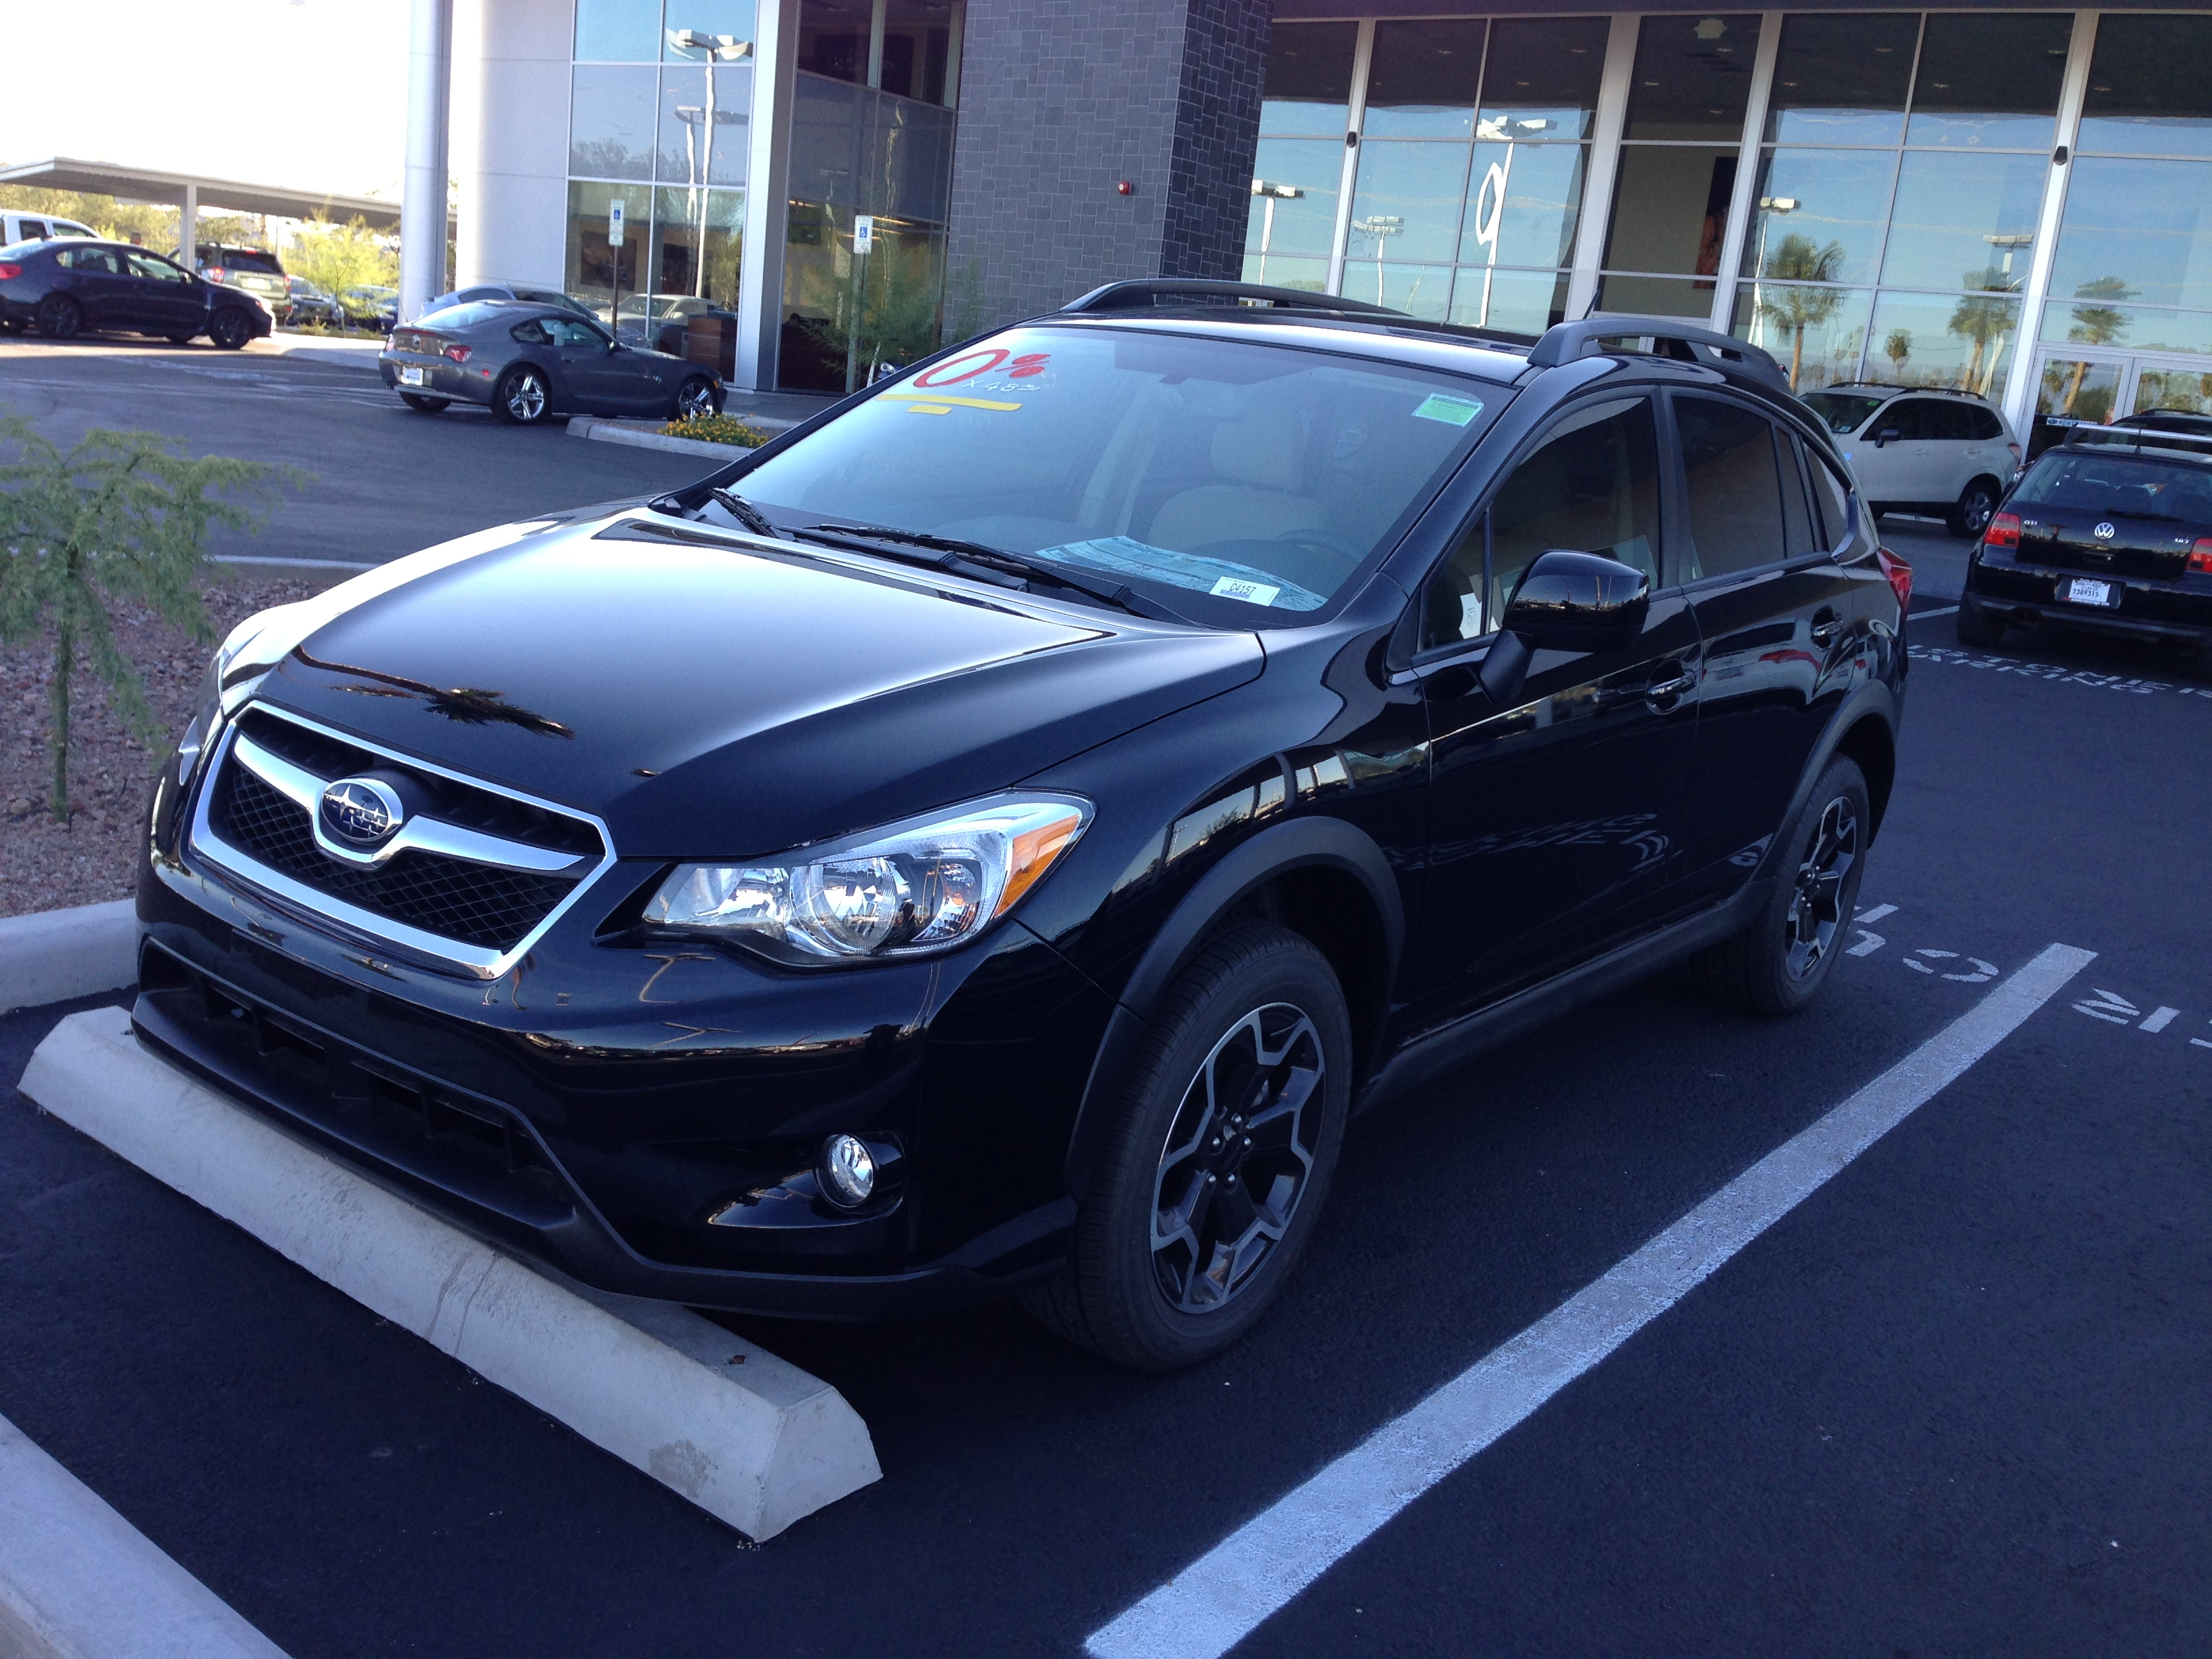 Subaru Showdown 2015 Forester vs 2014 XV Crosstrek – Zac Baker